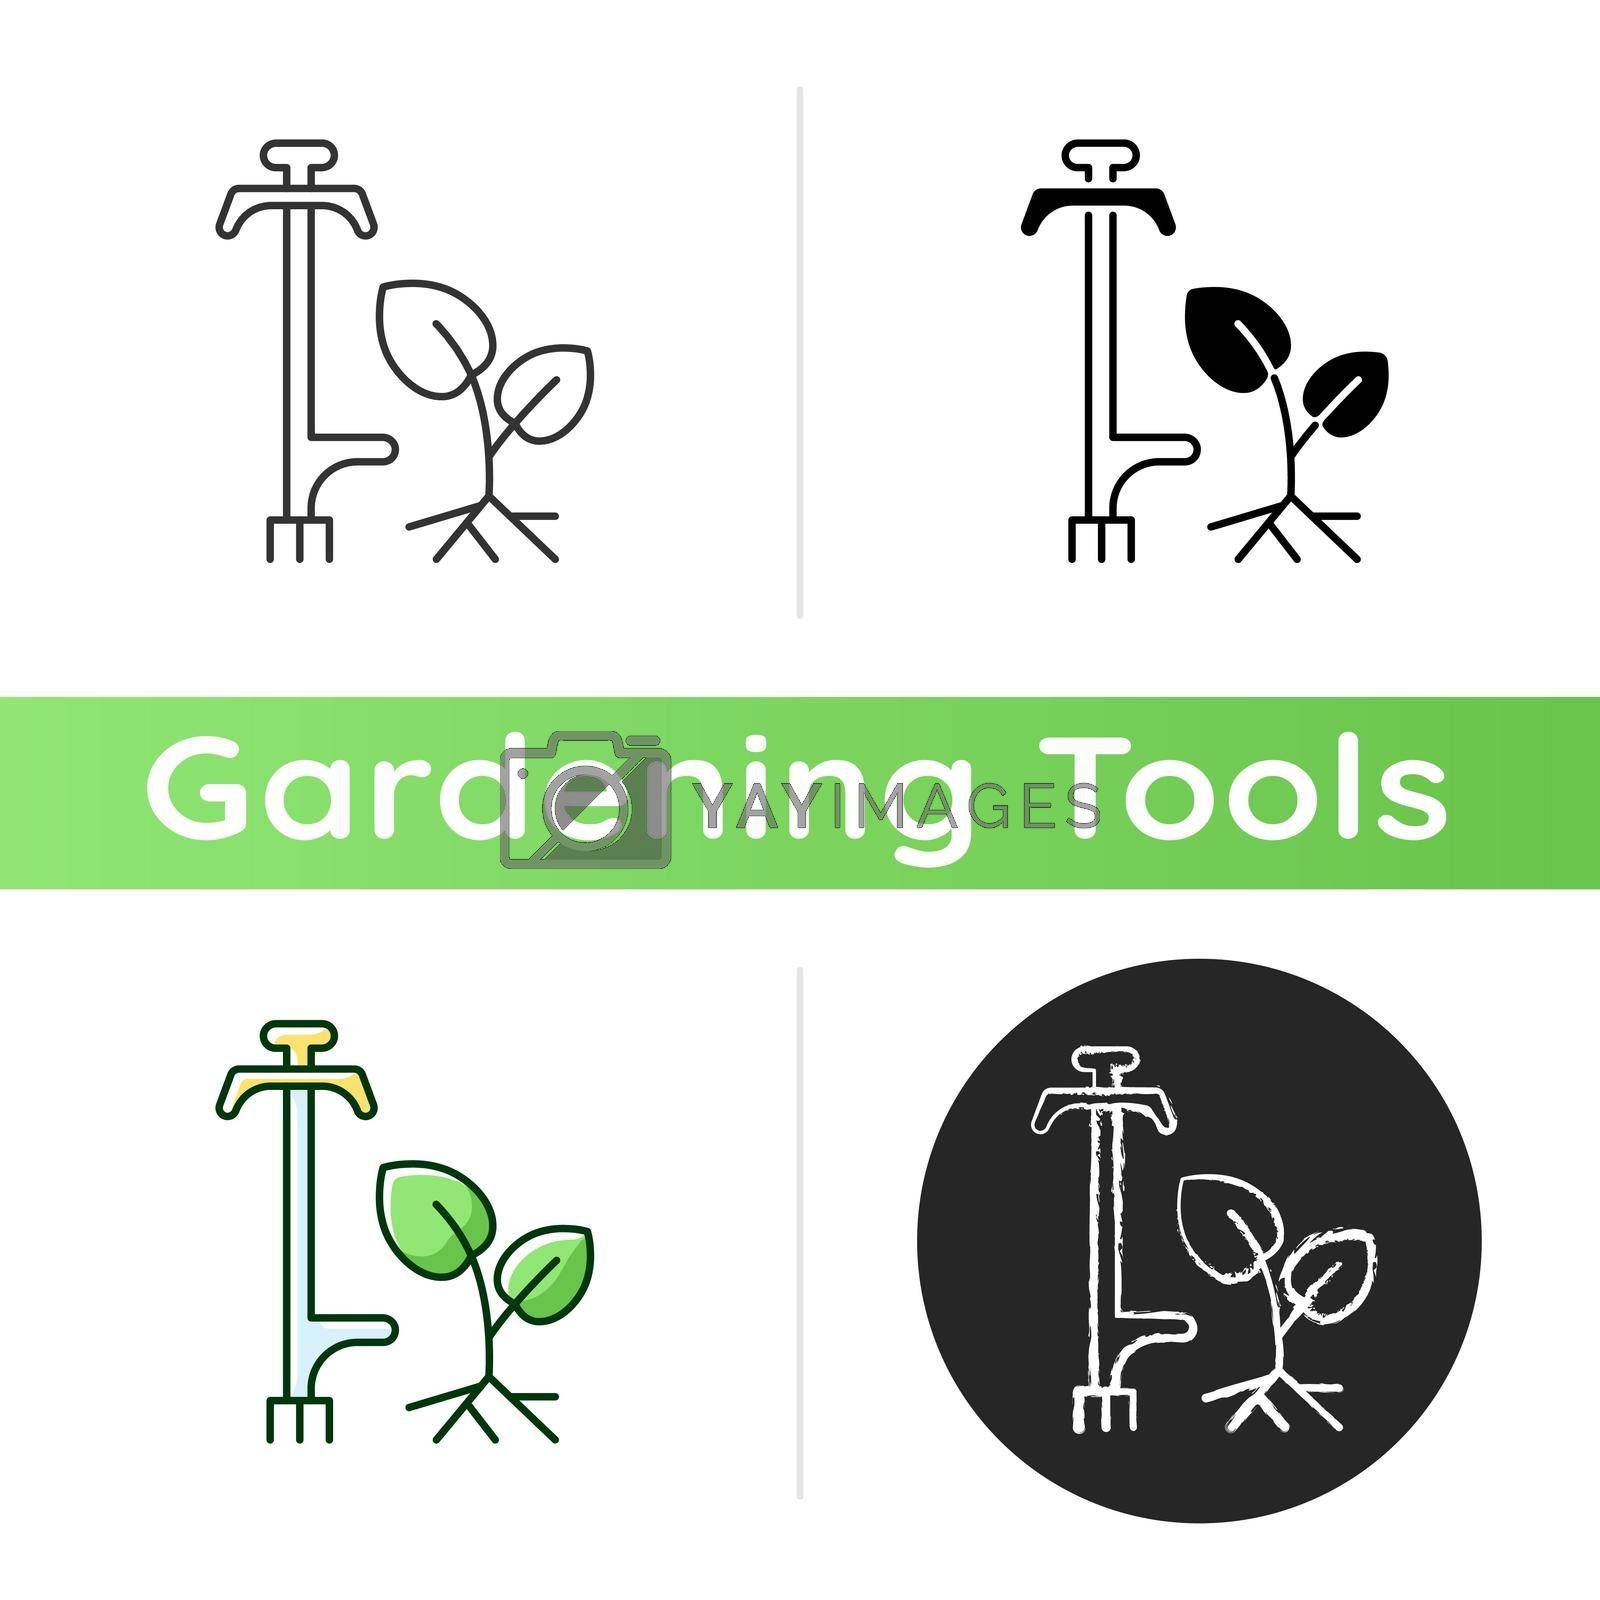 Weed puller icon. Garden and lawn care. Pulling tool. Removing unwanted deep-rooted weeds. Getting dandelions, thistles rid. Linear black and RGB color styles. Isolated vector illustrations